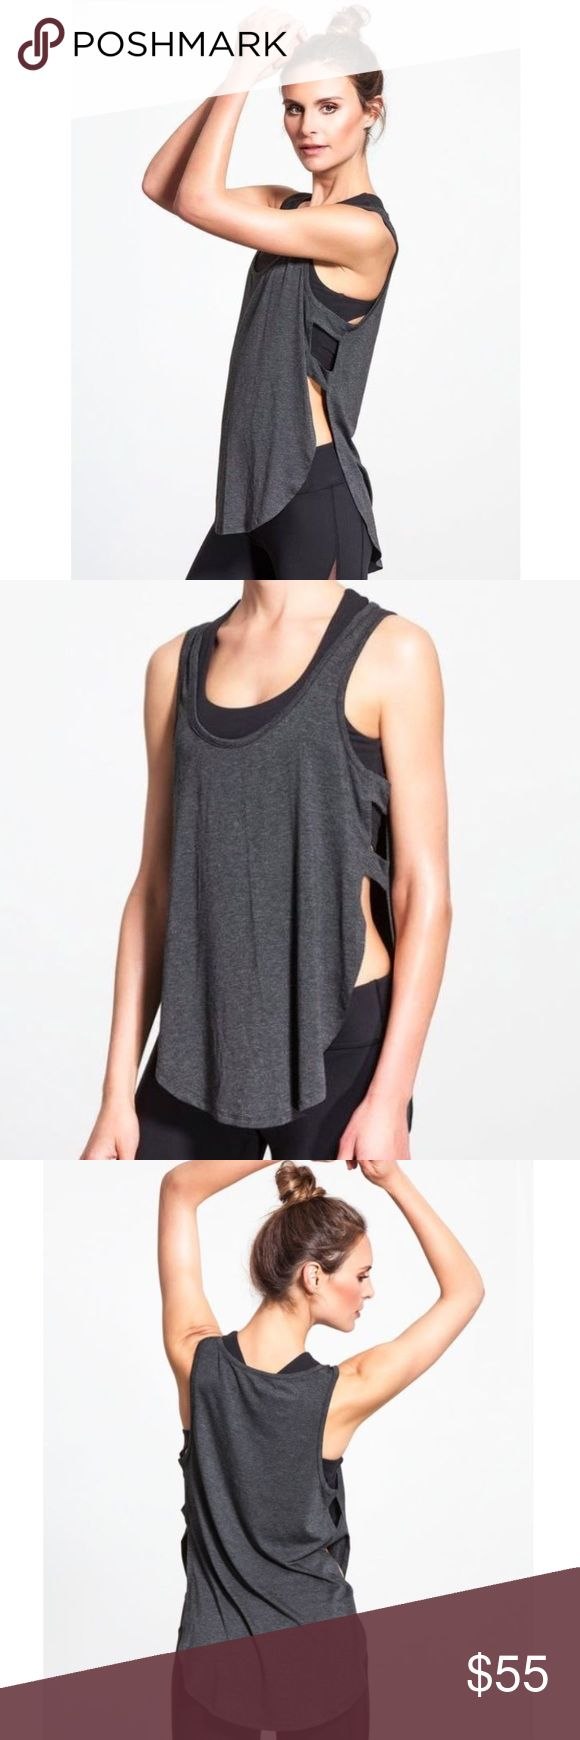 Beyond Yoga Heathered Open Side Circle Tank beyond Yoga Open side tank. New with tags. Size large( I'm a small and fits good no drooping in the front just a bit longer in length) Beyond Yoga Tops Tank Tops